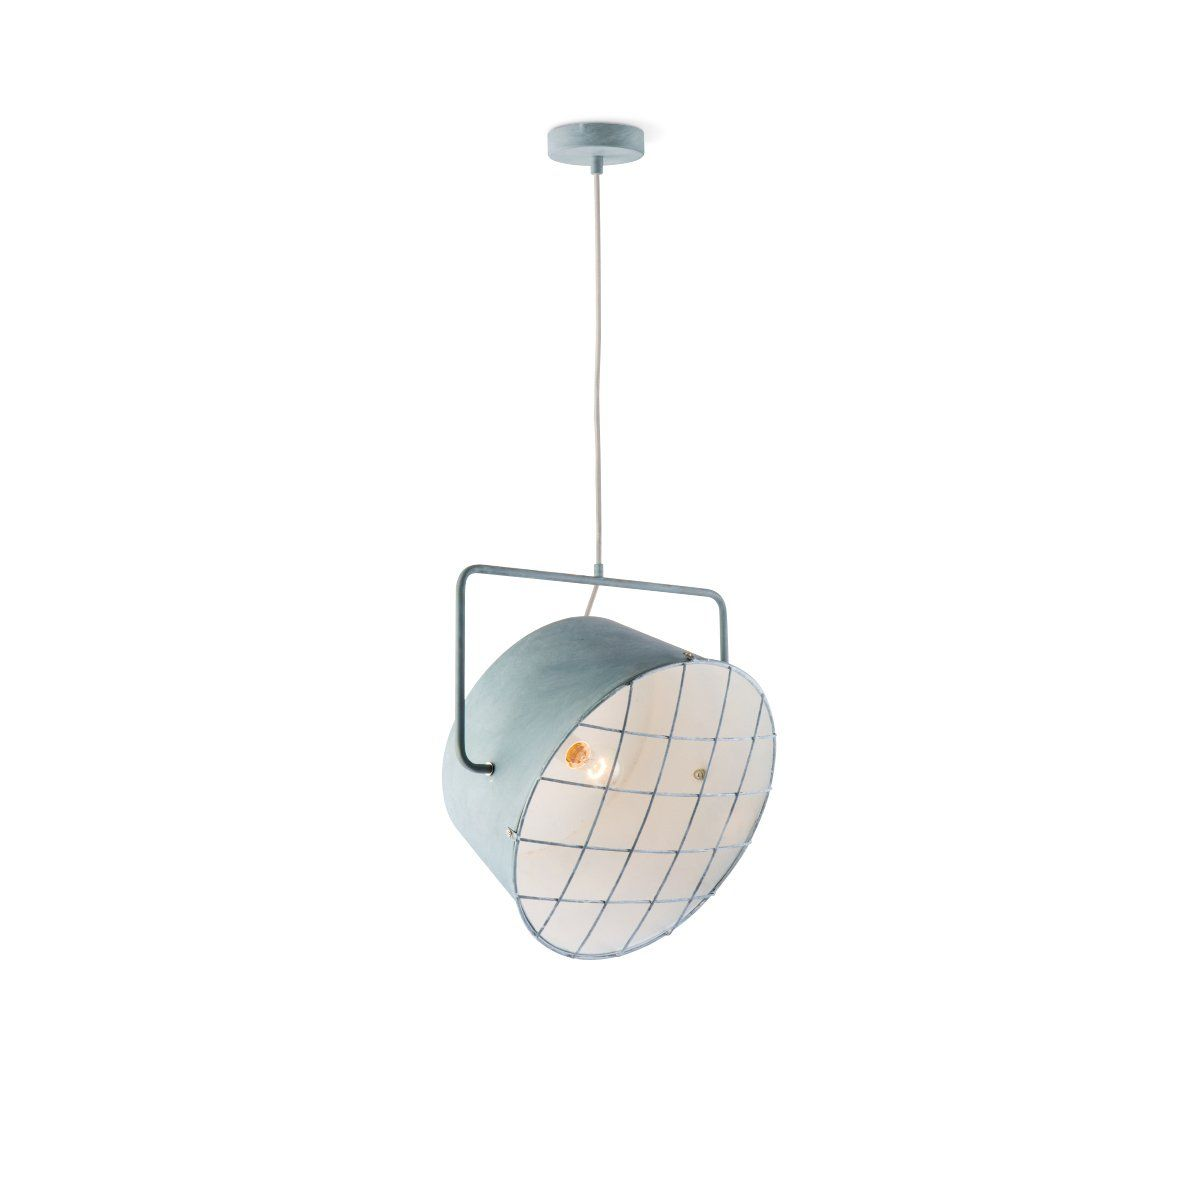 Home sweet home hanglamp Clemento - Beton